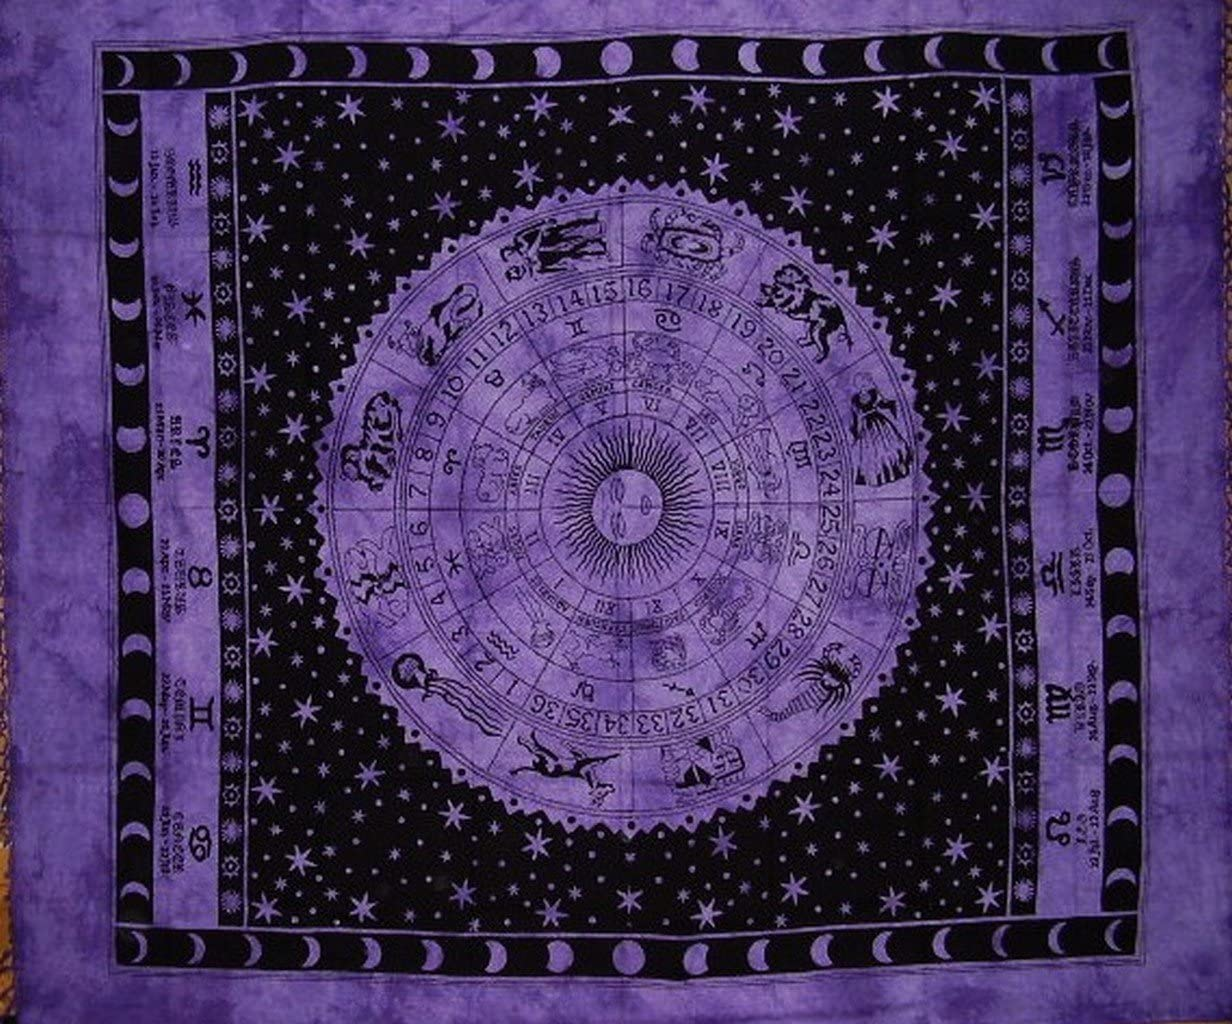 India Arts Astrological Tapestry Cotton Bedspread 92 x 82 Full Purple